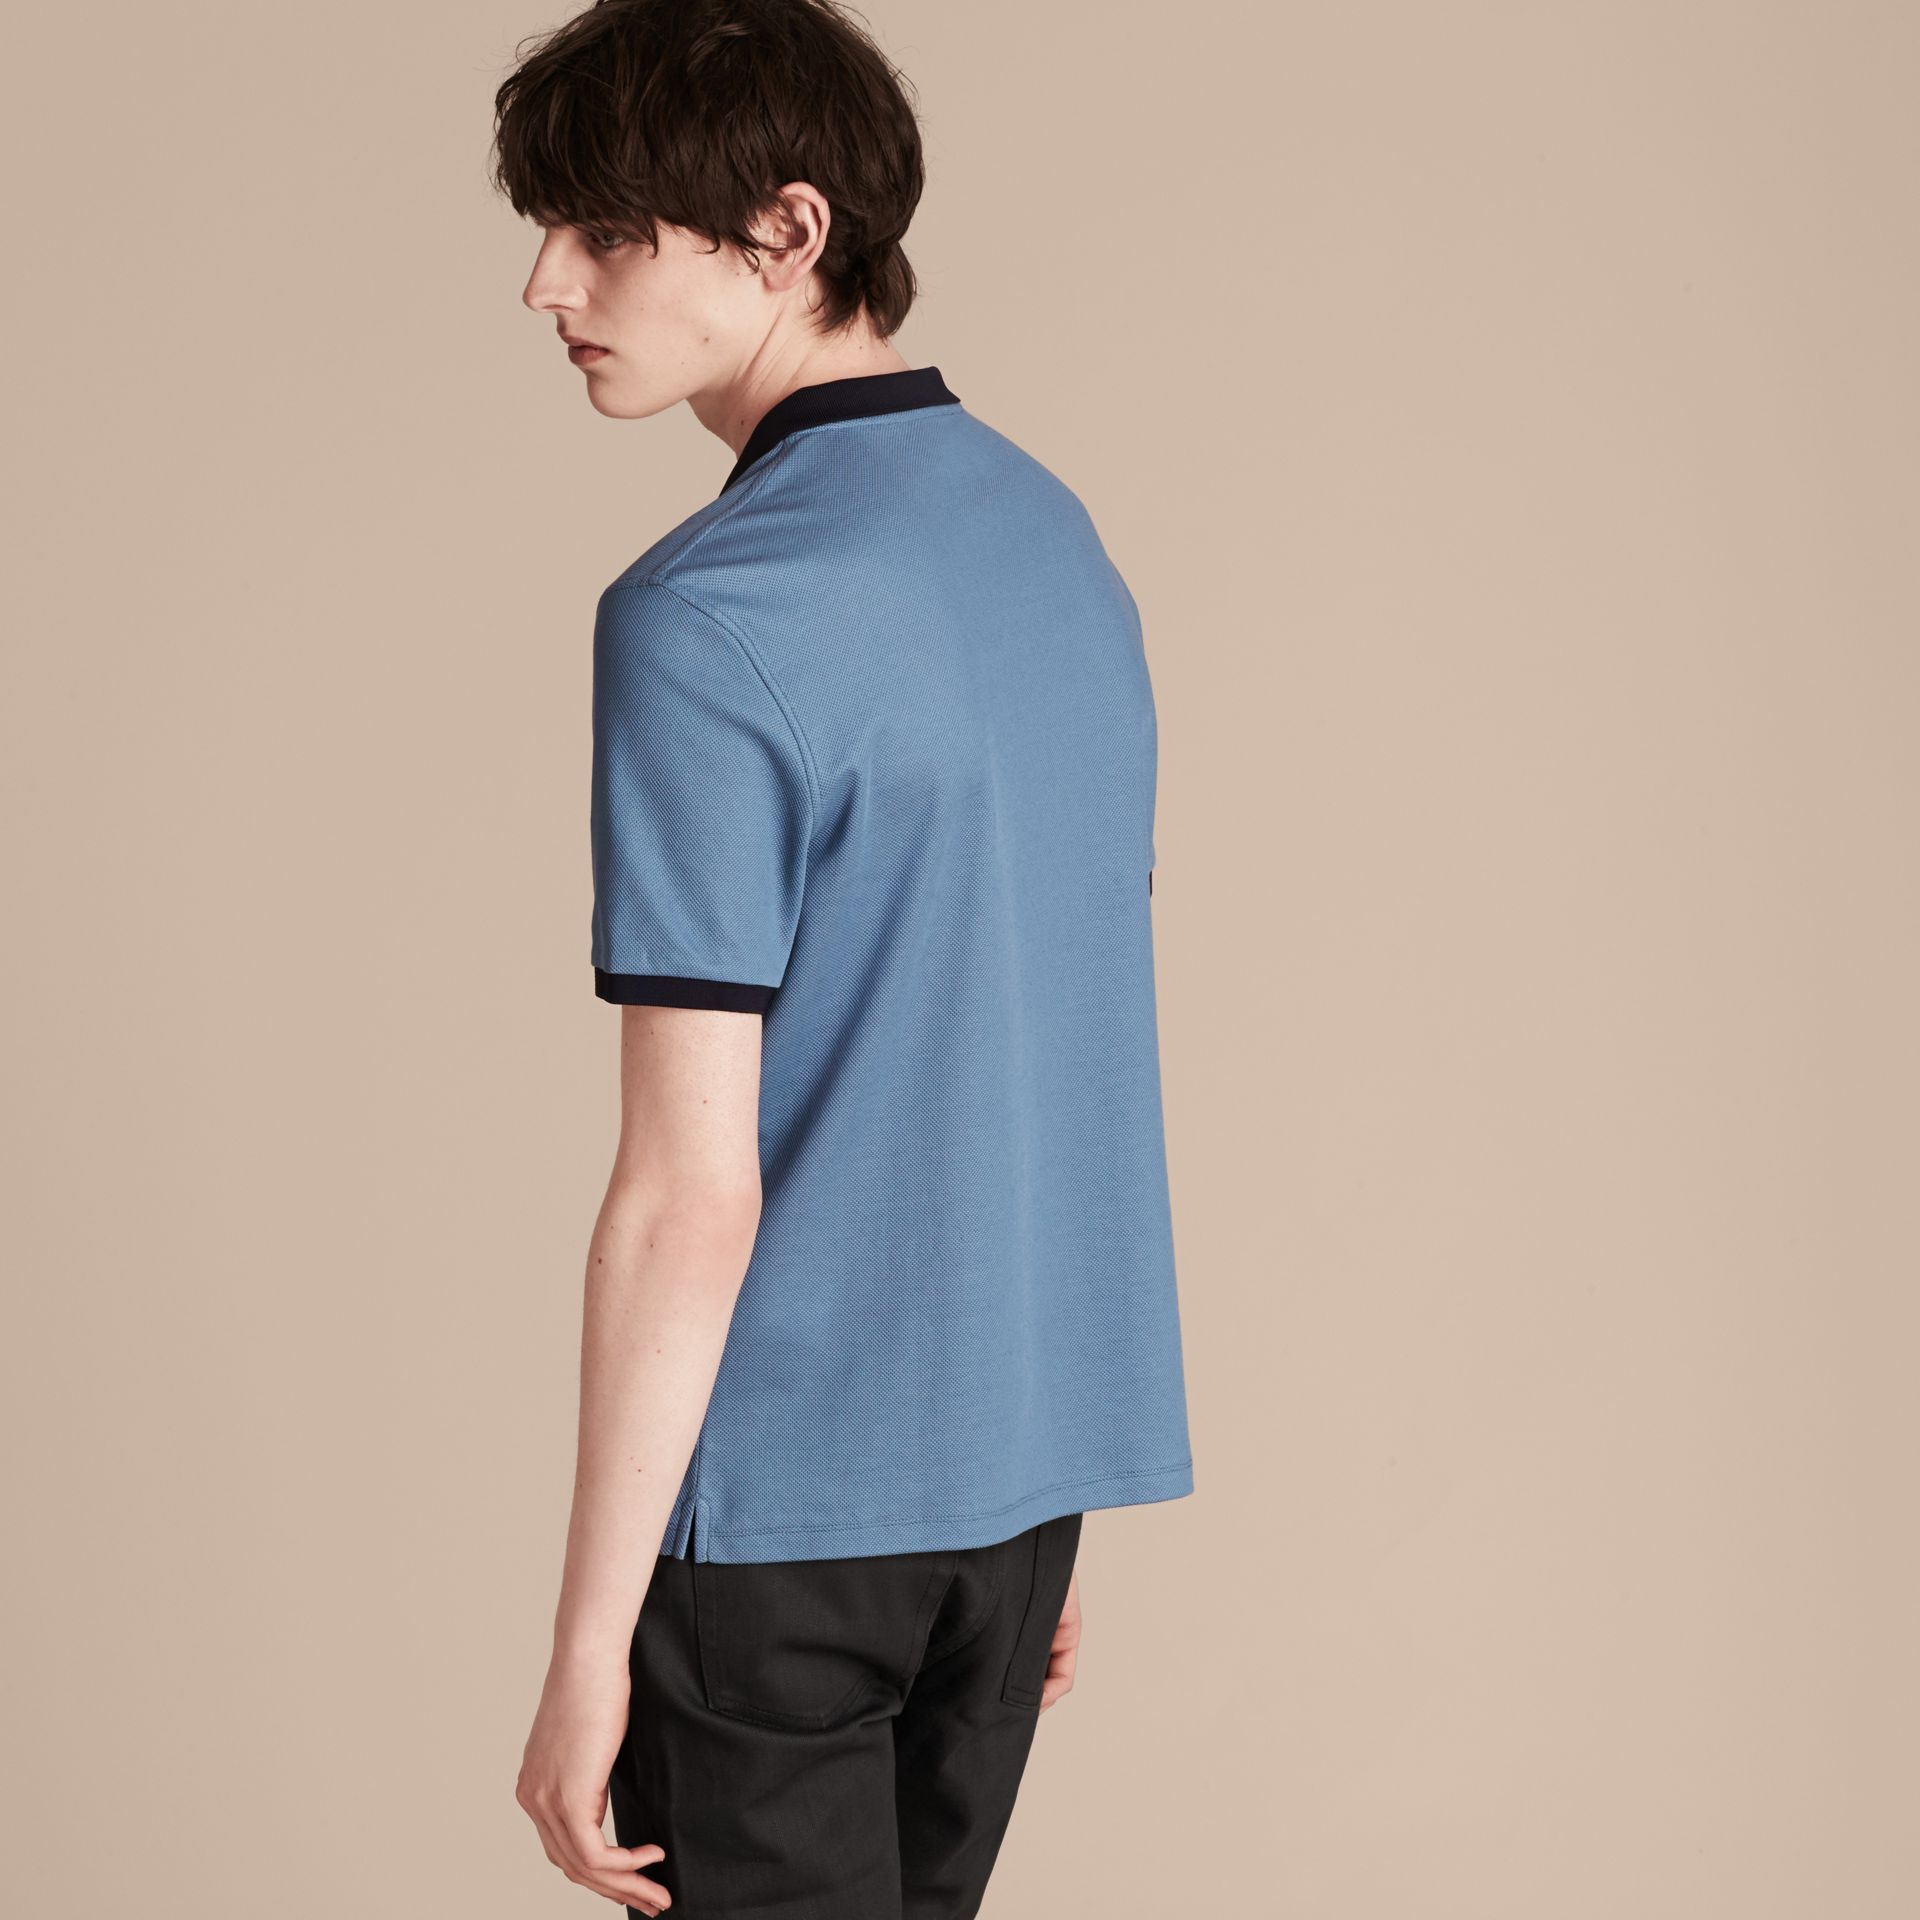 Pale cornflower blue/bright navy Mercerised Cotton Piqué Polo Shirt Pale Cornflower Blue/bright Navy - gallery image 1